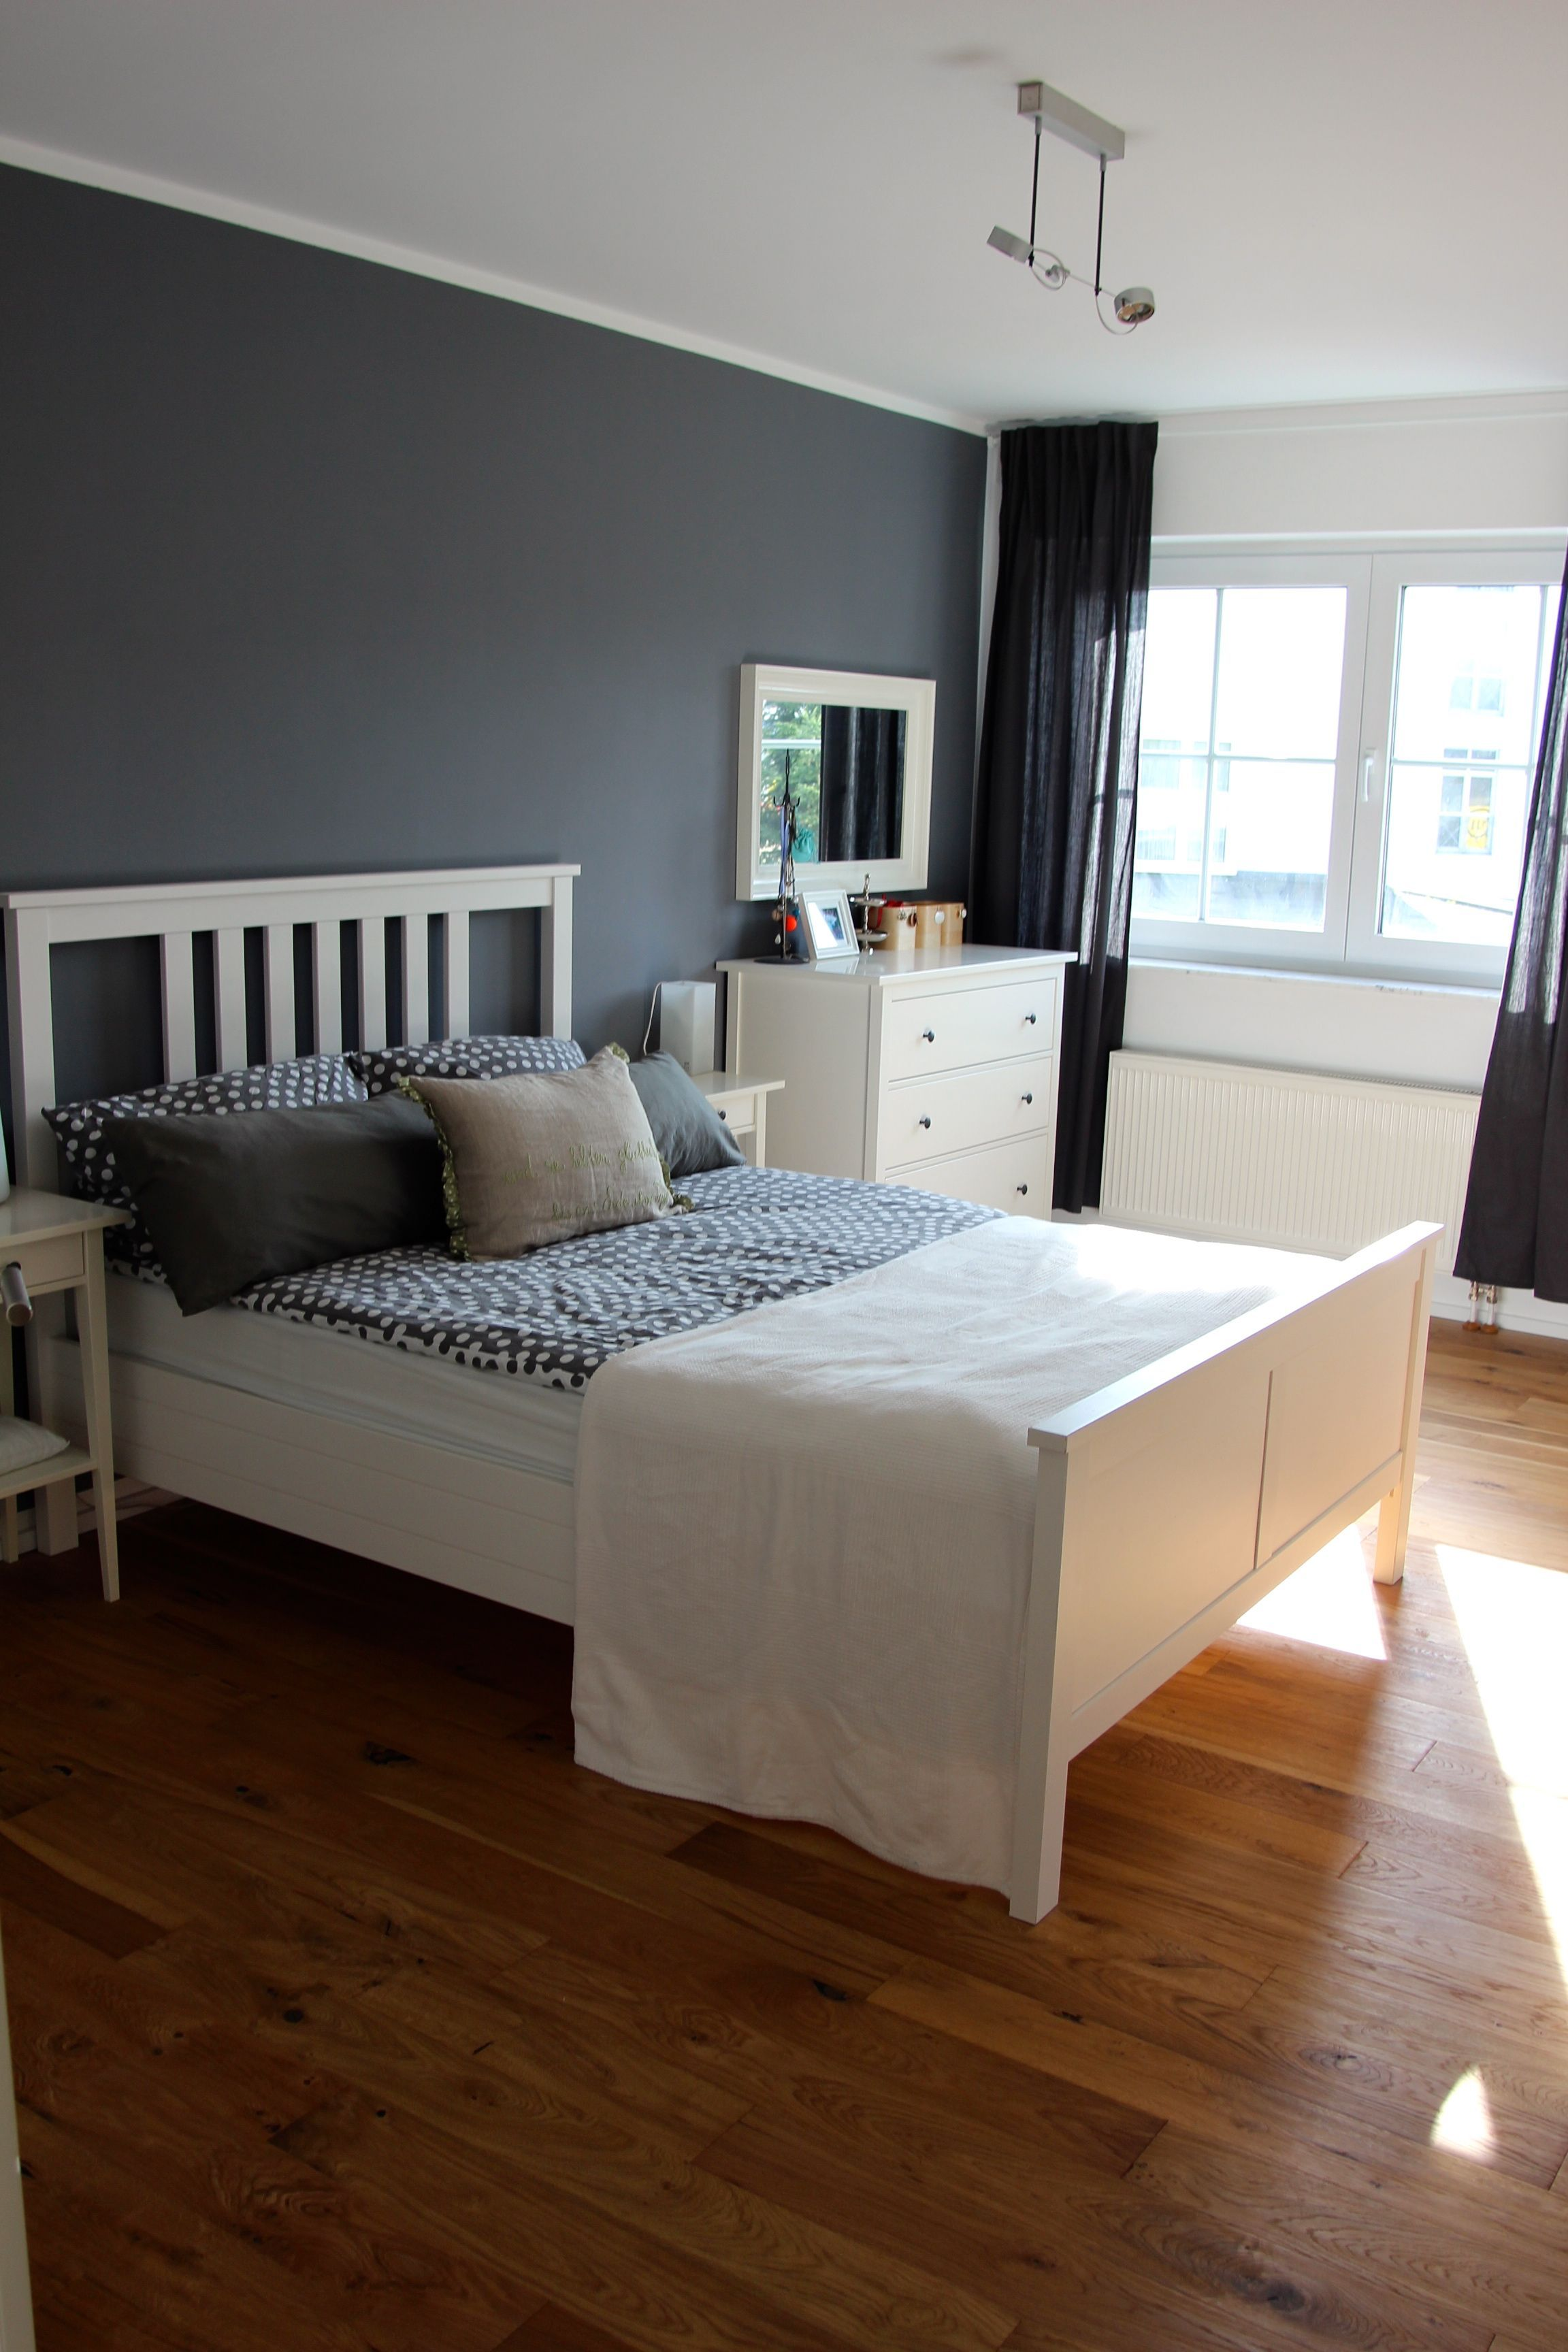 die sch nsten ideen f r dein ikea schlafzimmer schlafzimmer pinterest ikea schlafzimmer. Black Bedroom Furniture Sets. Home Design Ideas